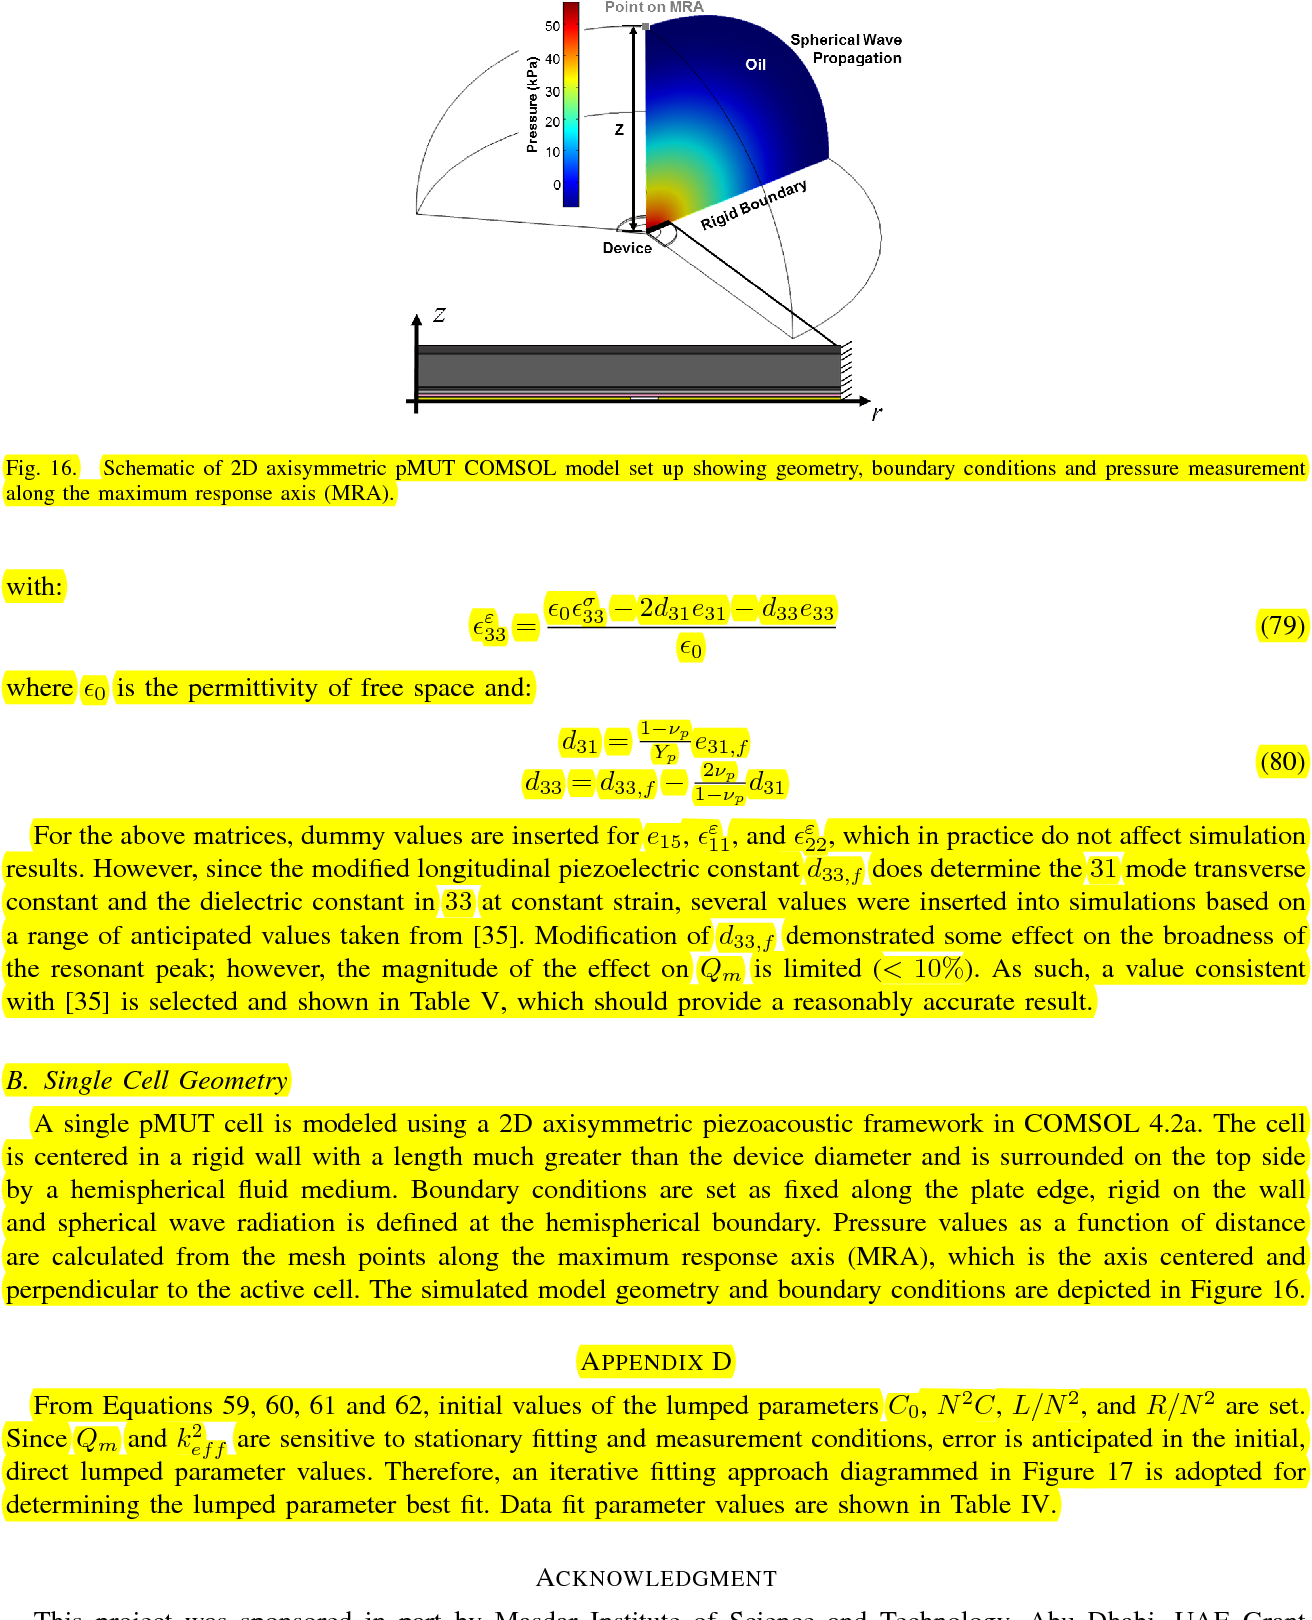 Experiment And Simulation Validated Analytical Equivalent Circuit Ultrasound Transducer Can Be Simulated With A Rlc As Shown In Model For Piezoelectric Micromachined Ultrasonic Transducers Semantic Scholar